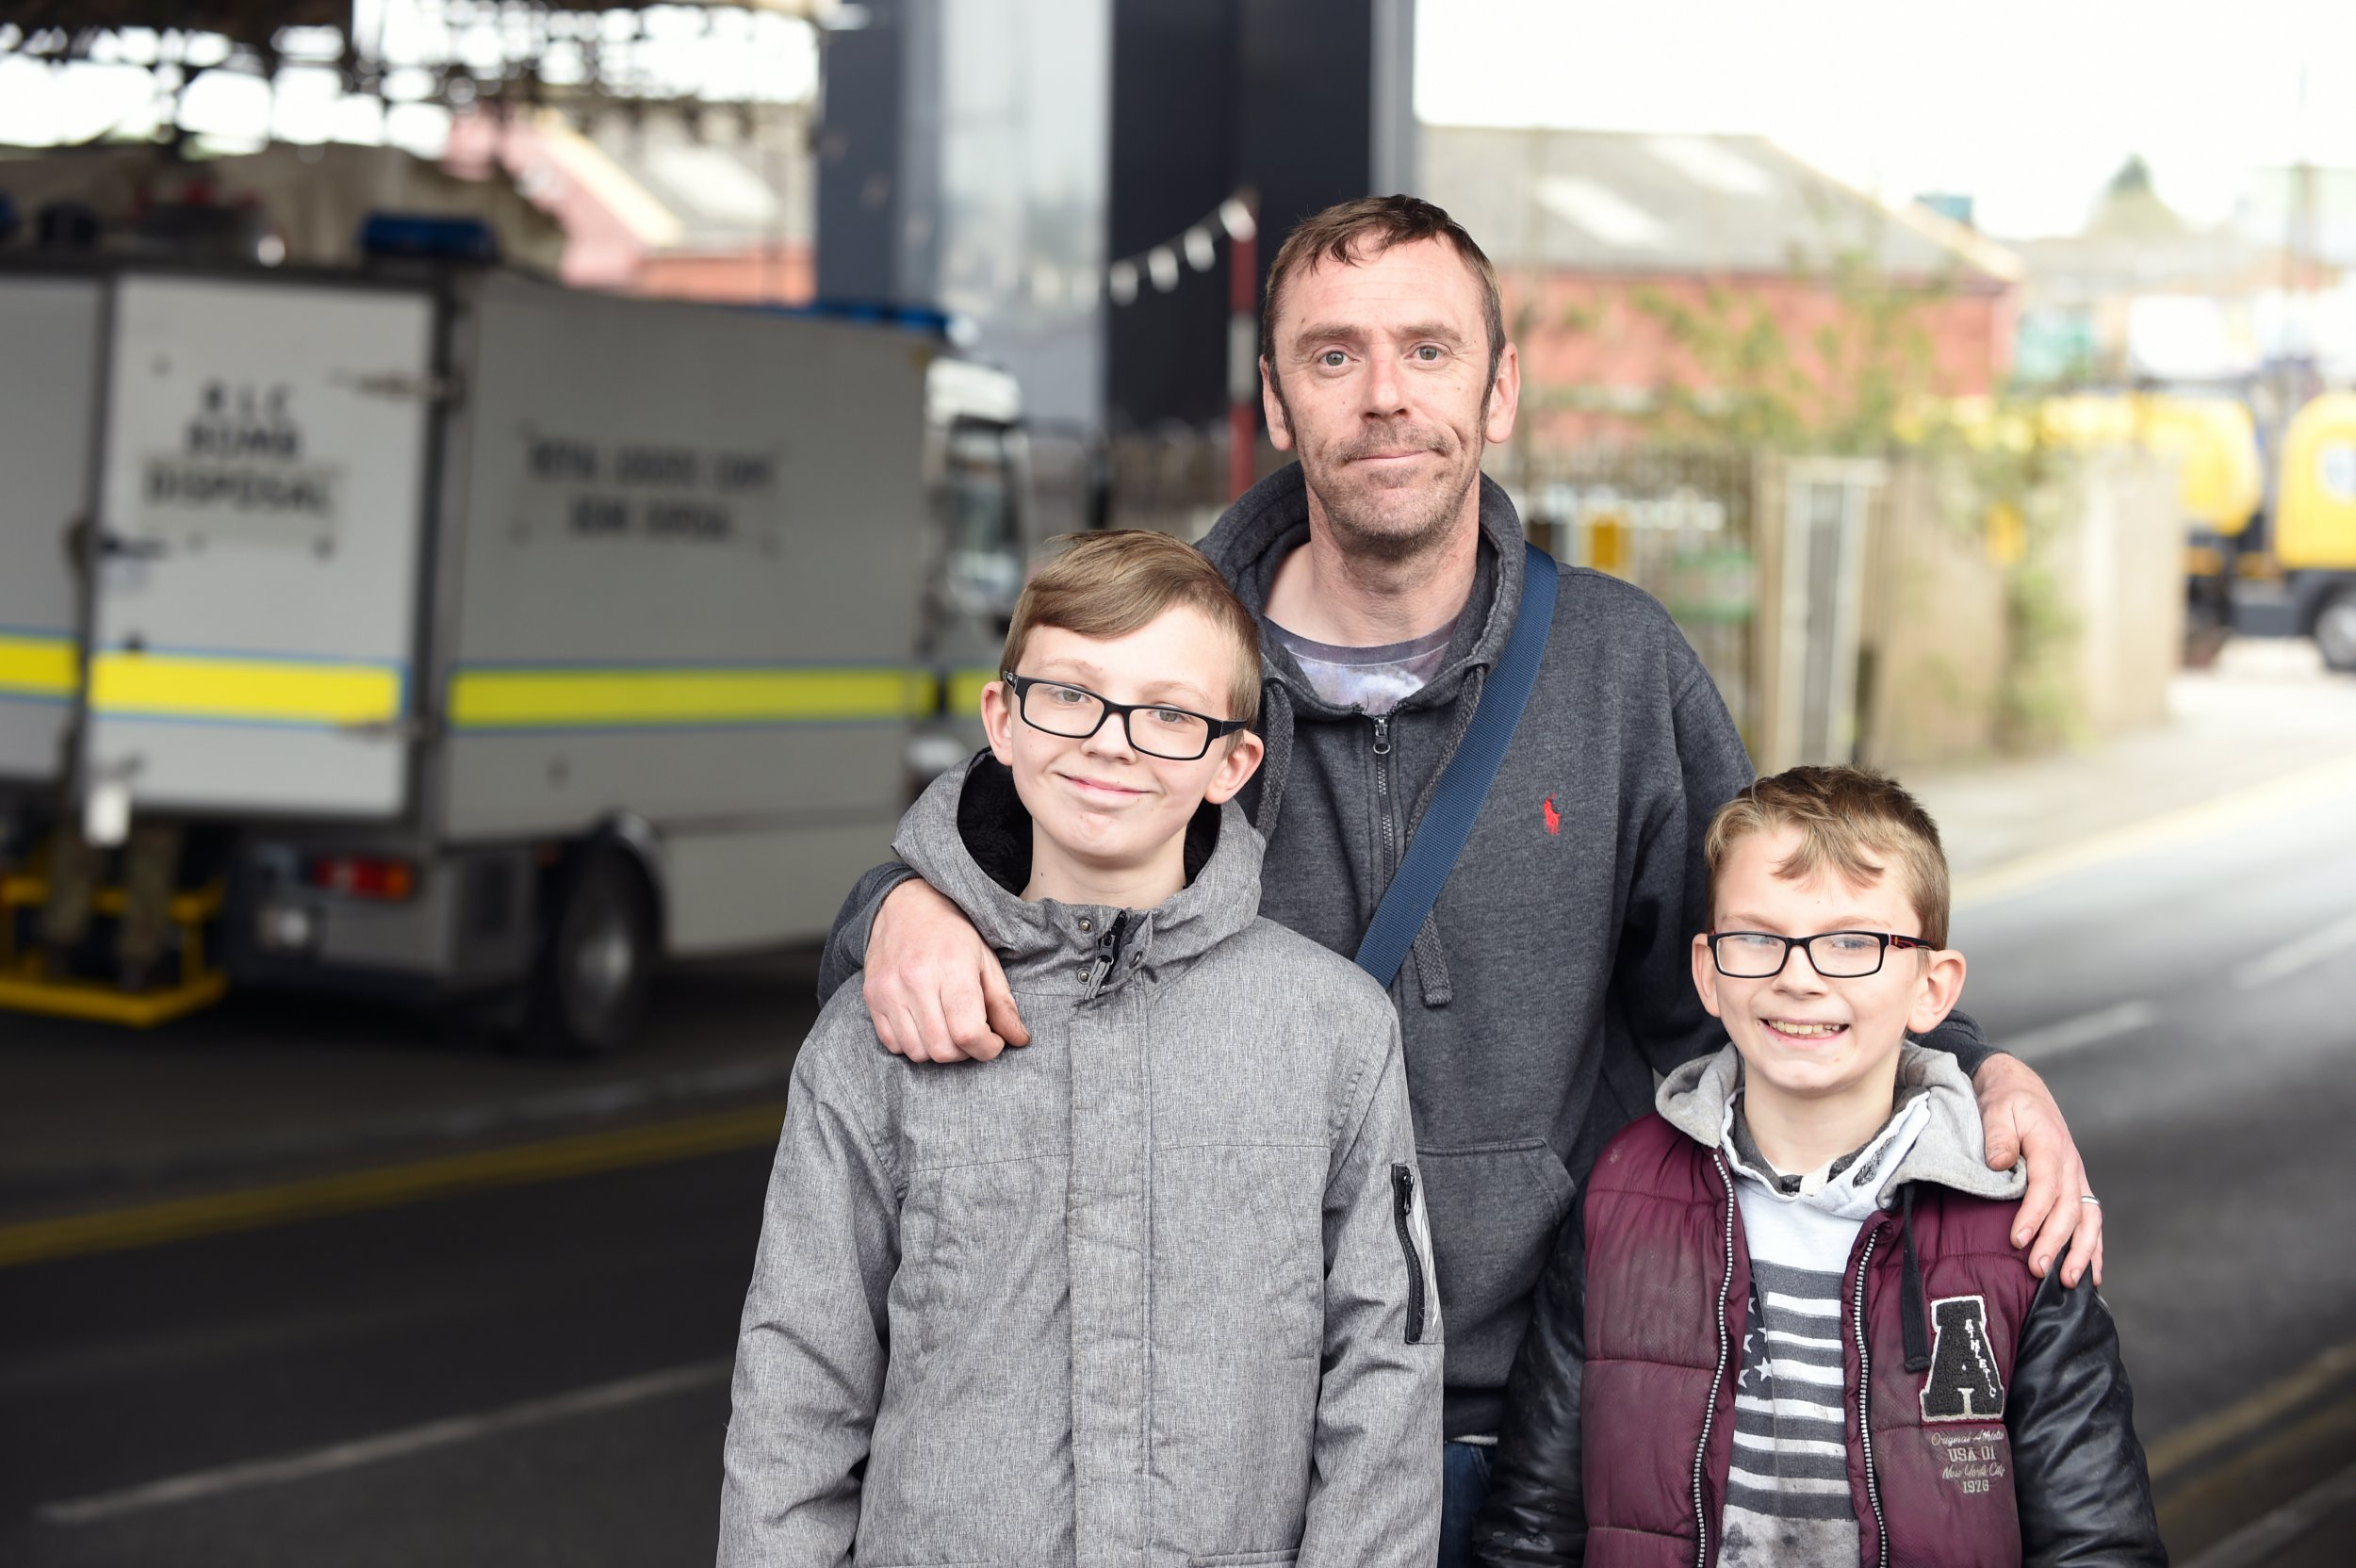 Pictured,23/3/19 Scott Harggod and his two sons , Finlay and Mckenzie while magnet fishing discover what Police belived to be a unexploded bomb. Road closed down and Army domb disposal are called. Pictured are Scott and his two sons McKenzie pictured Right and Findlay to the left of Scott centre. Also pictured are the Bomb squad and Police and the canal from where the device was fished. Also pictured is the device